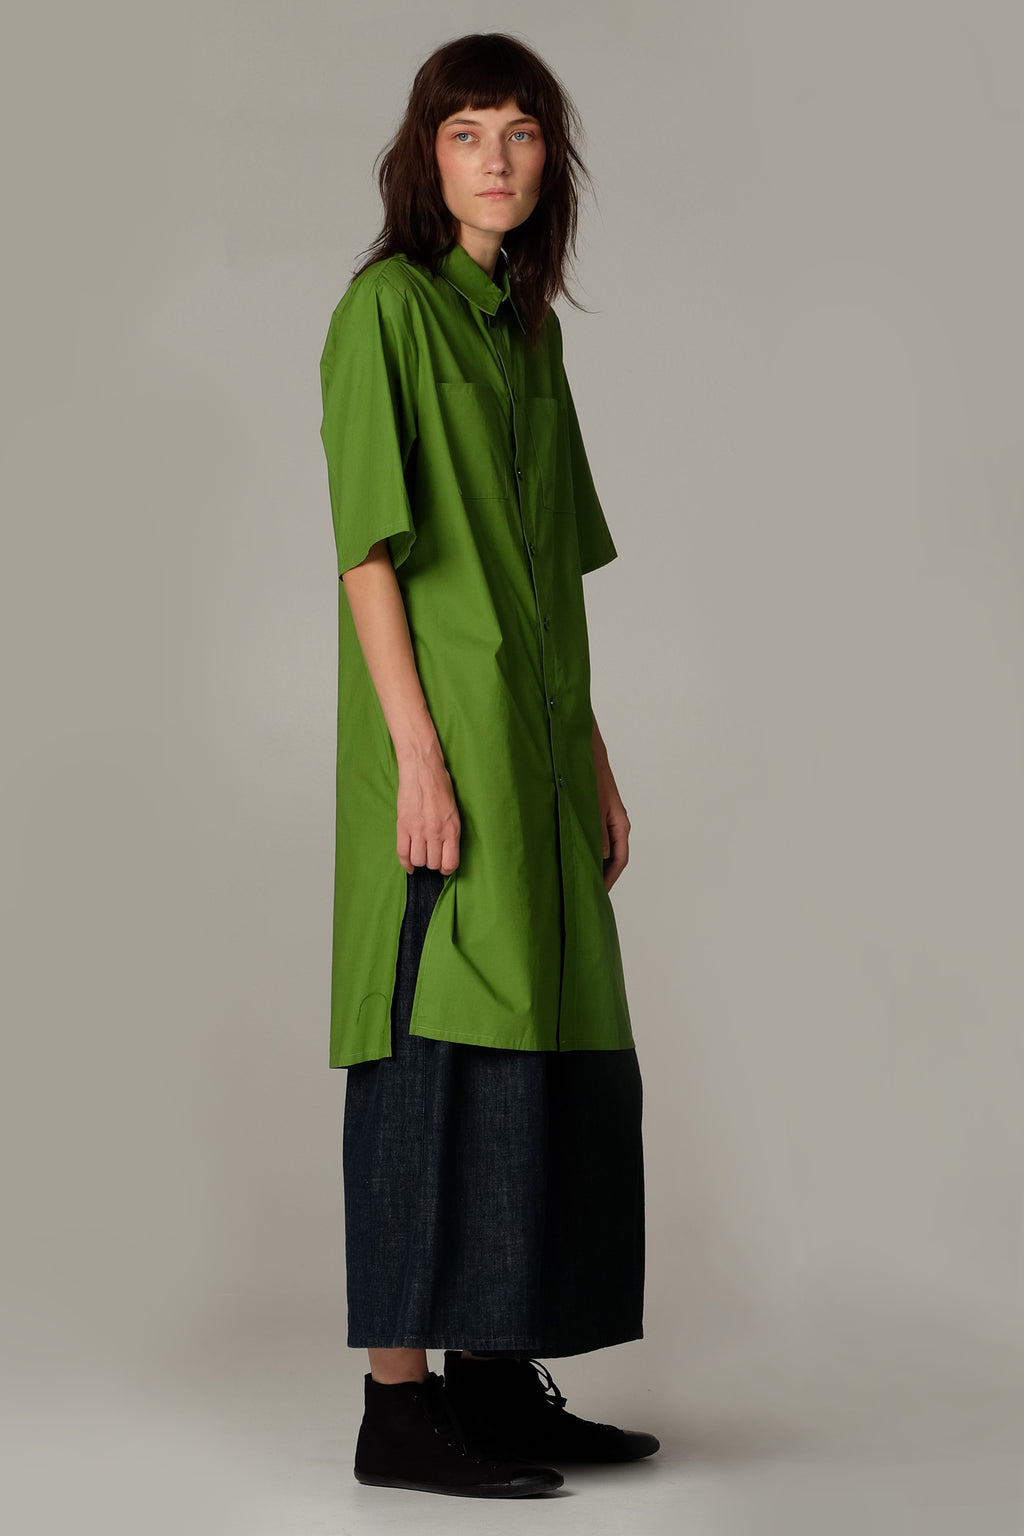 OUTSIDER dress -Plant green - One Wolf